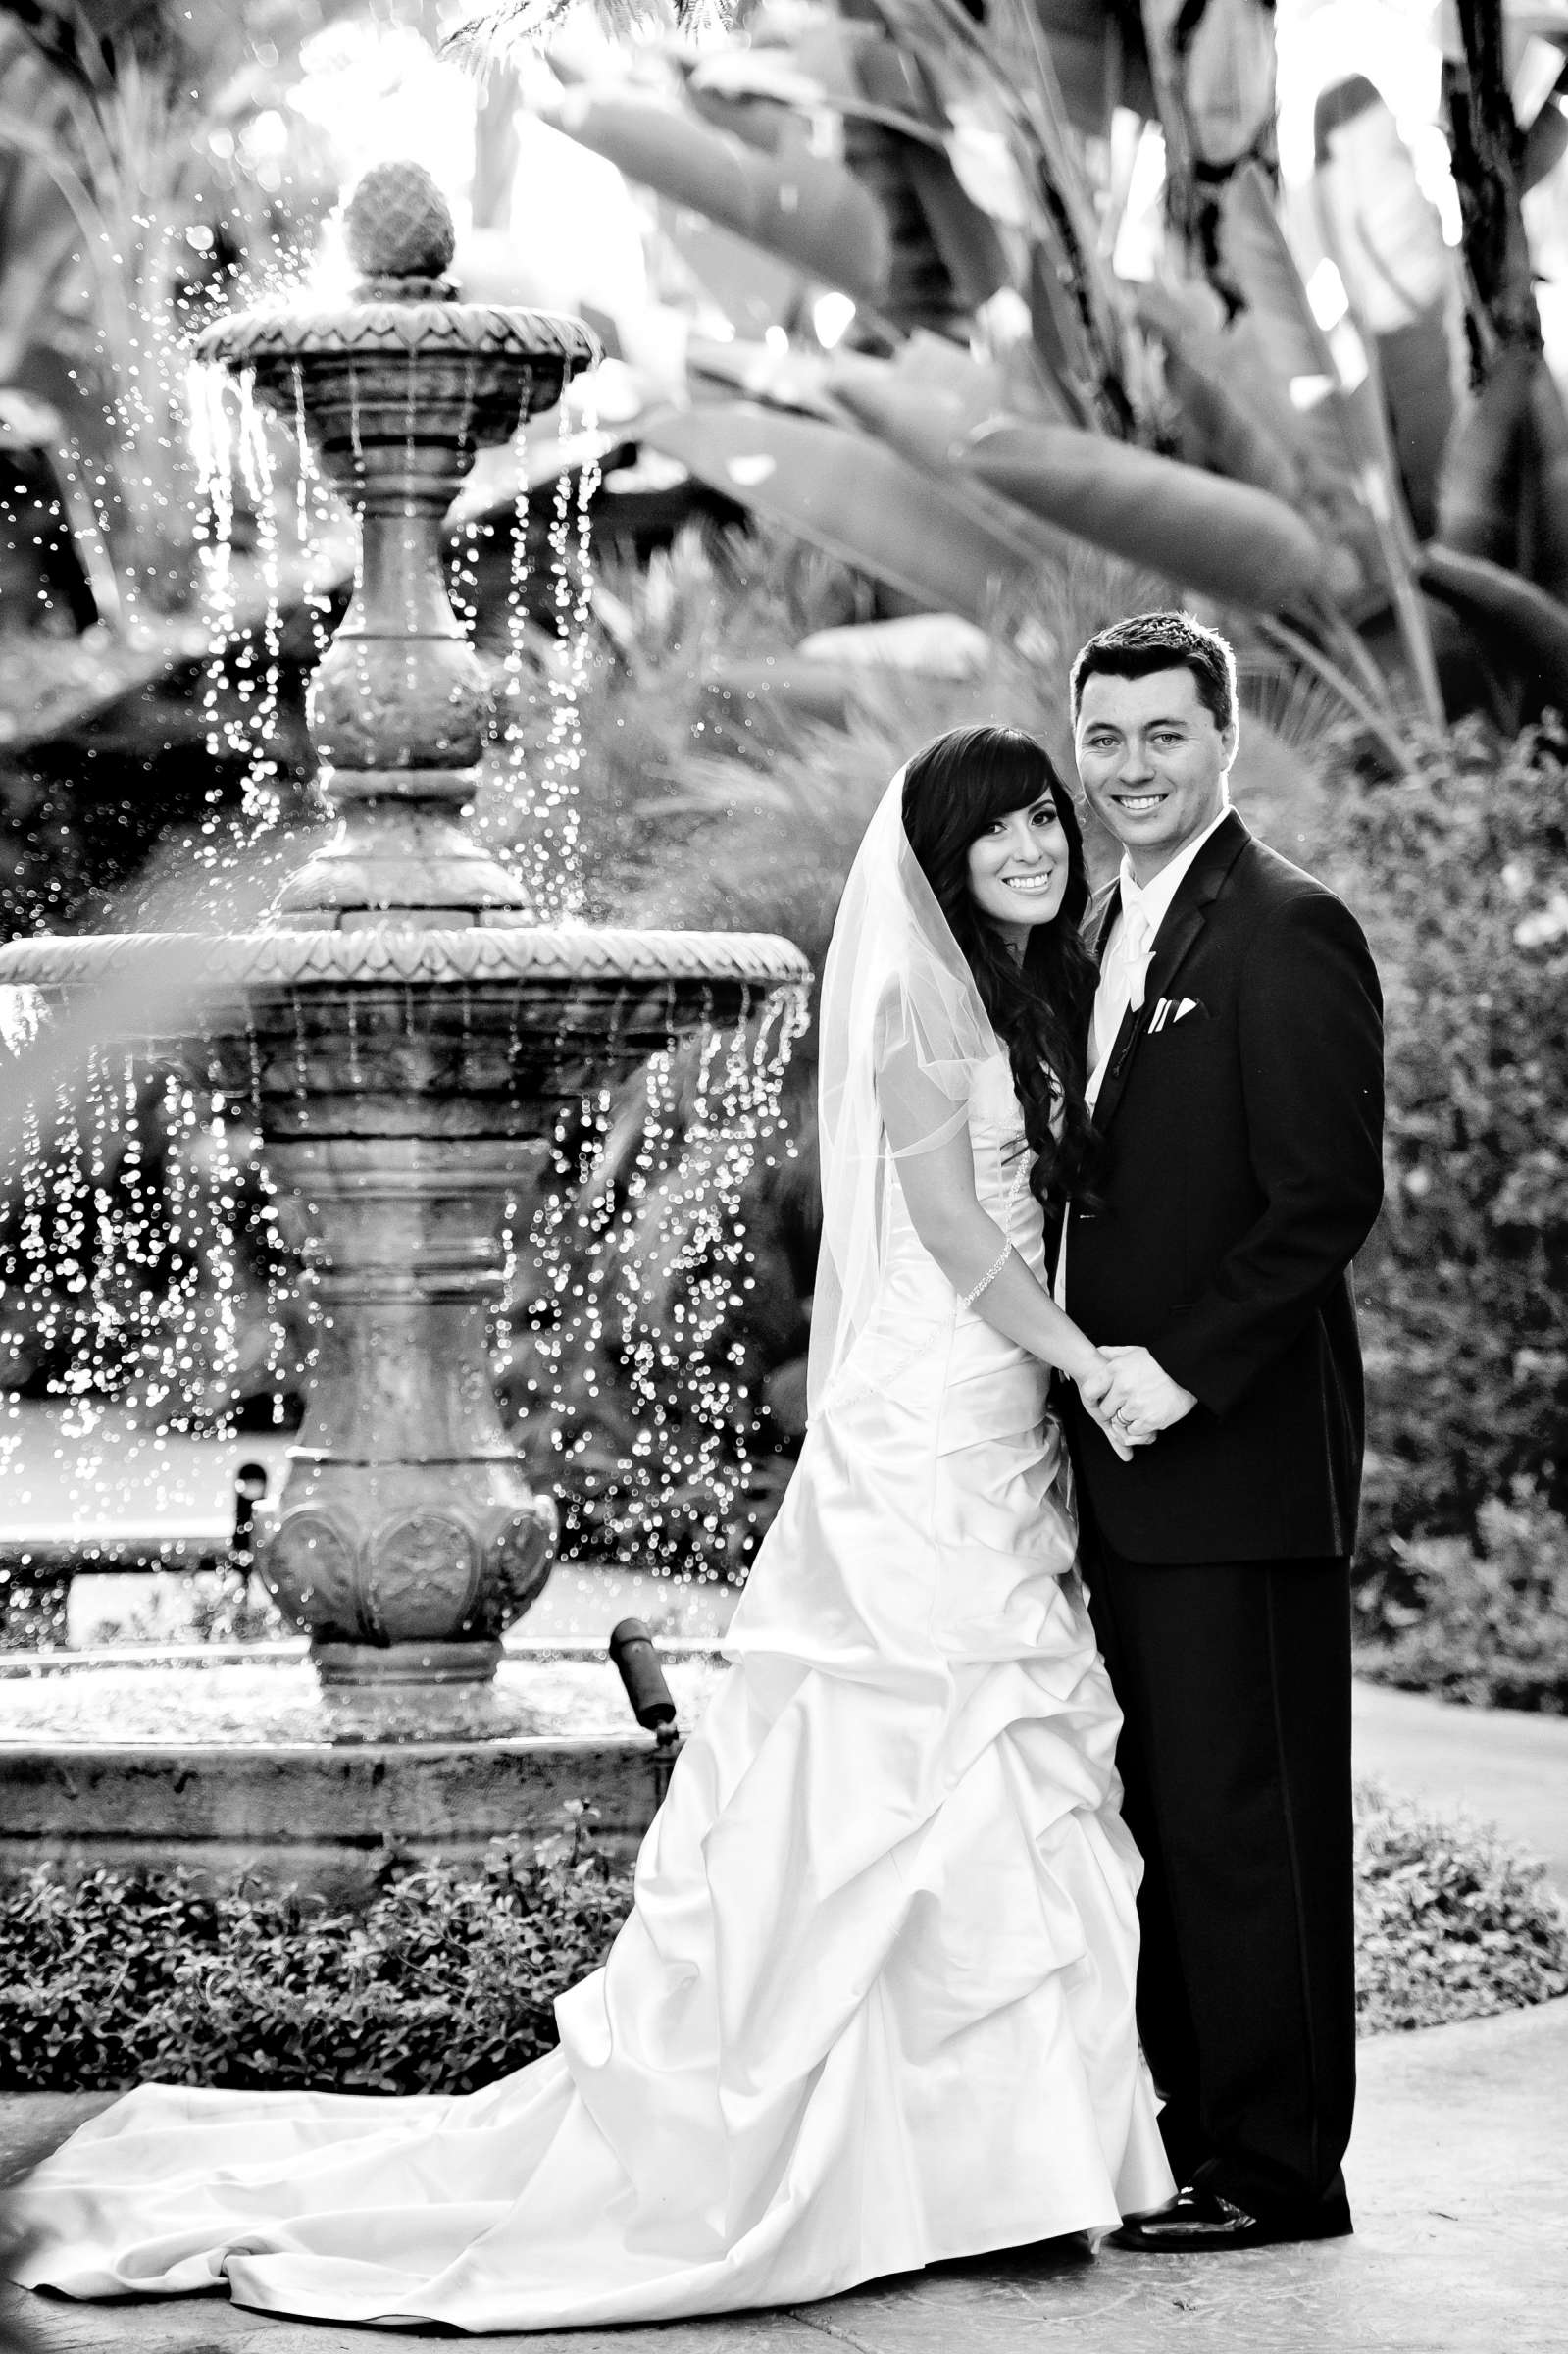 Grand Tradition Estate Wedding, Sharlene and Tony Wedding Photo #319507 by True Photography